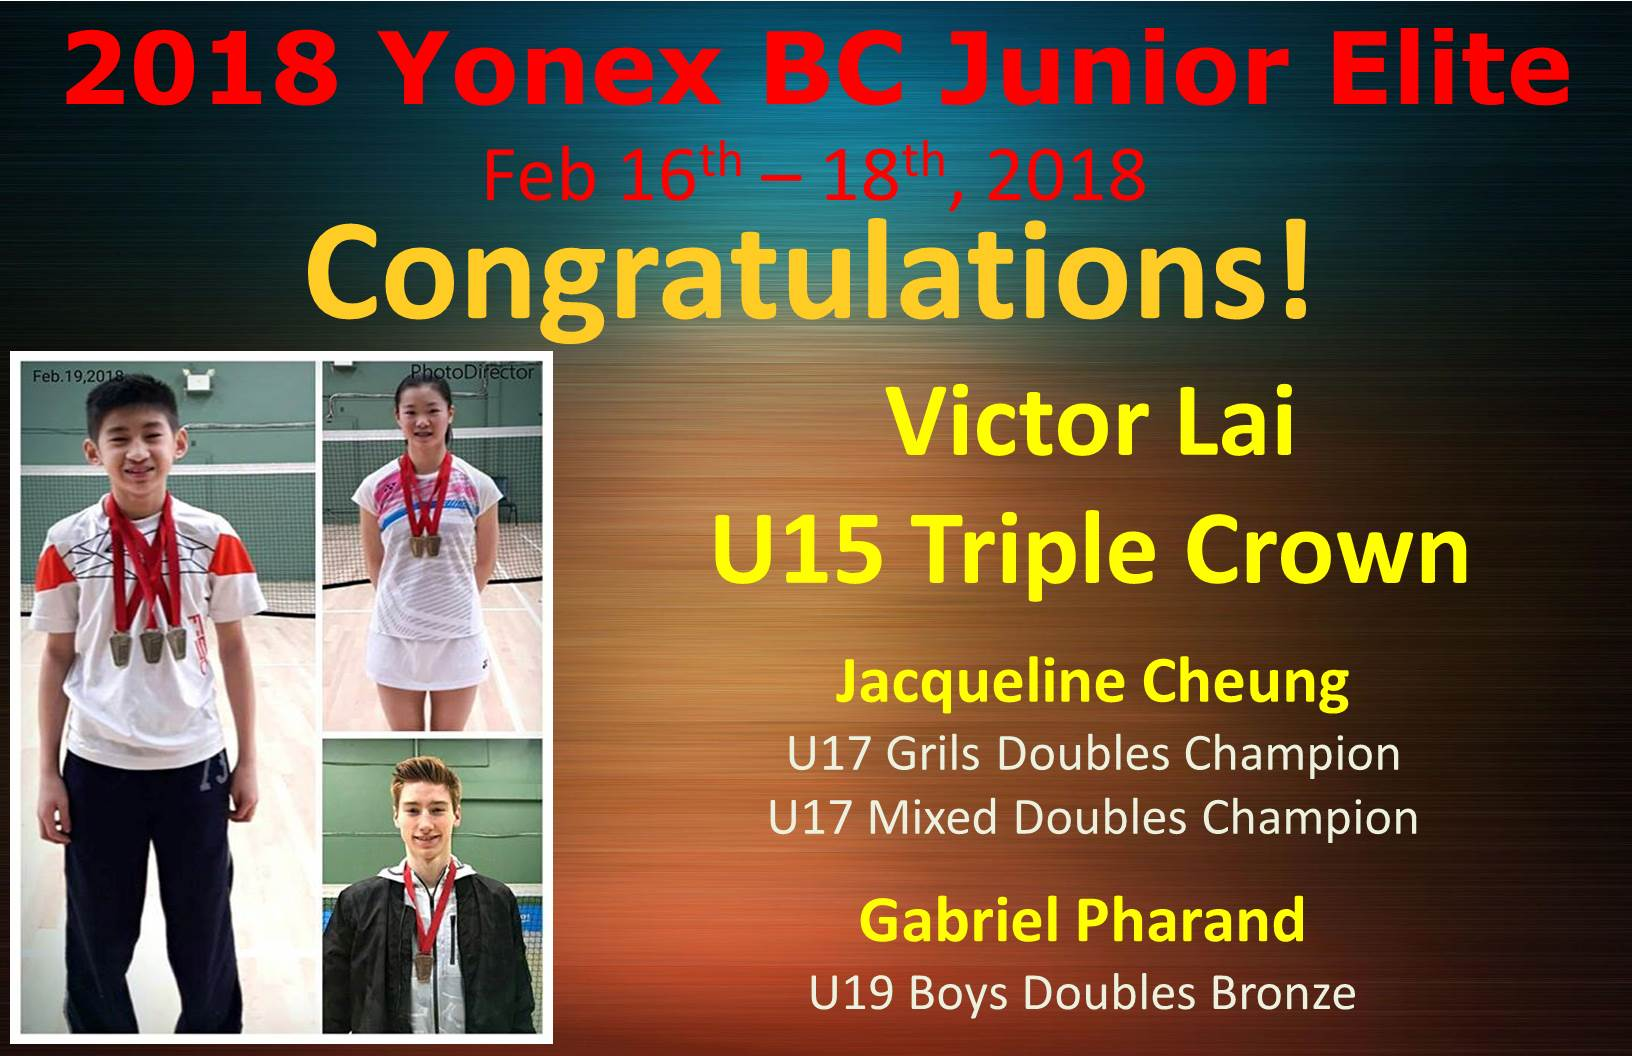 BC Junior Elite Feb 16-18, 2018